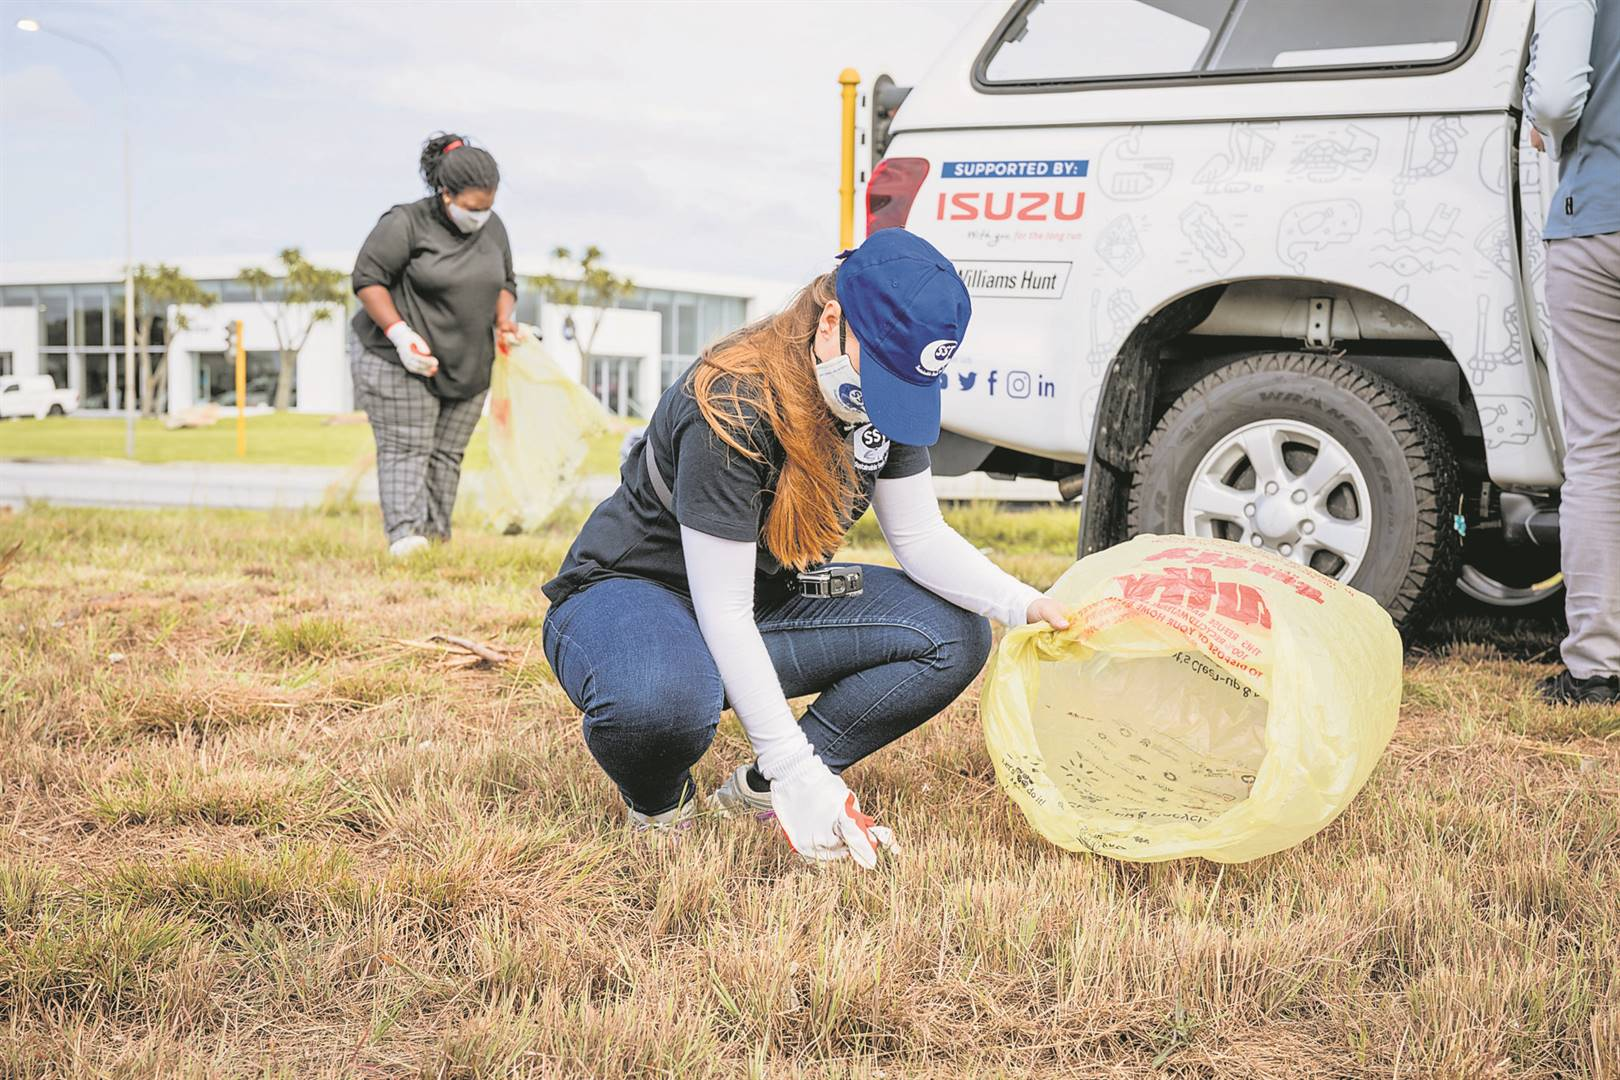 Operation Clean Spot Researcher, Tayla Gifford, clean up her adopted spot with the help of Chumisa Lujabe.